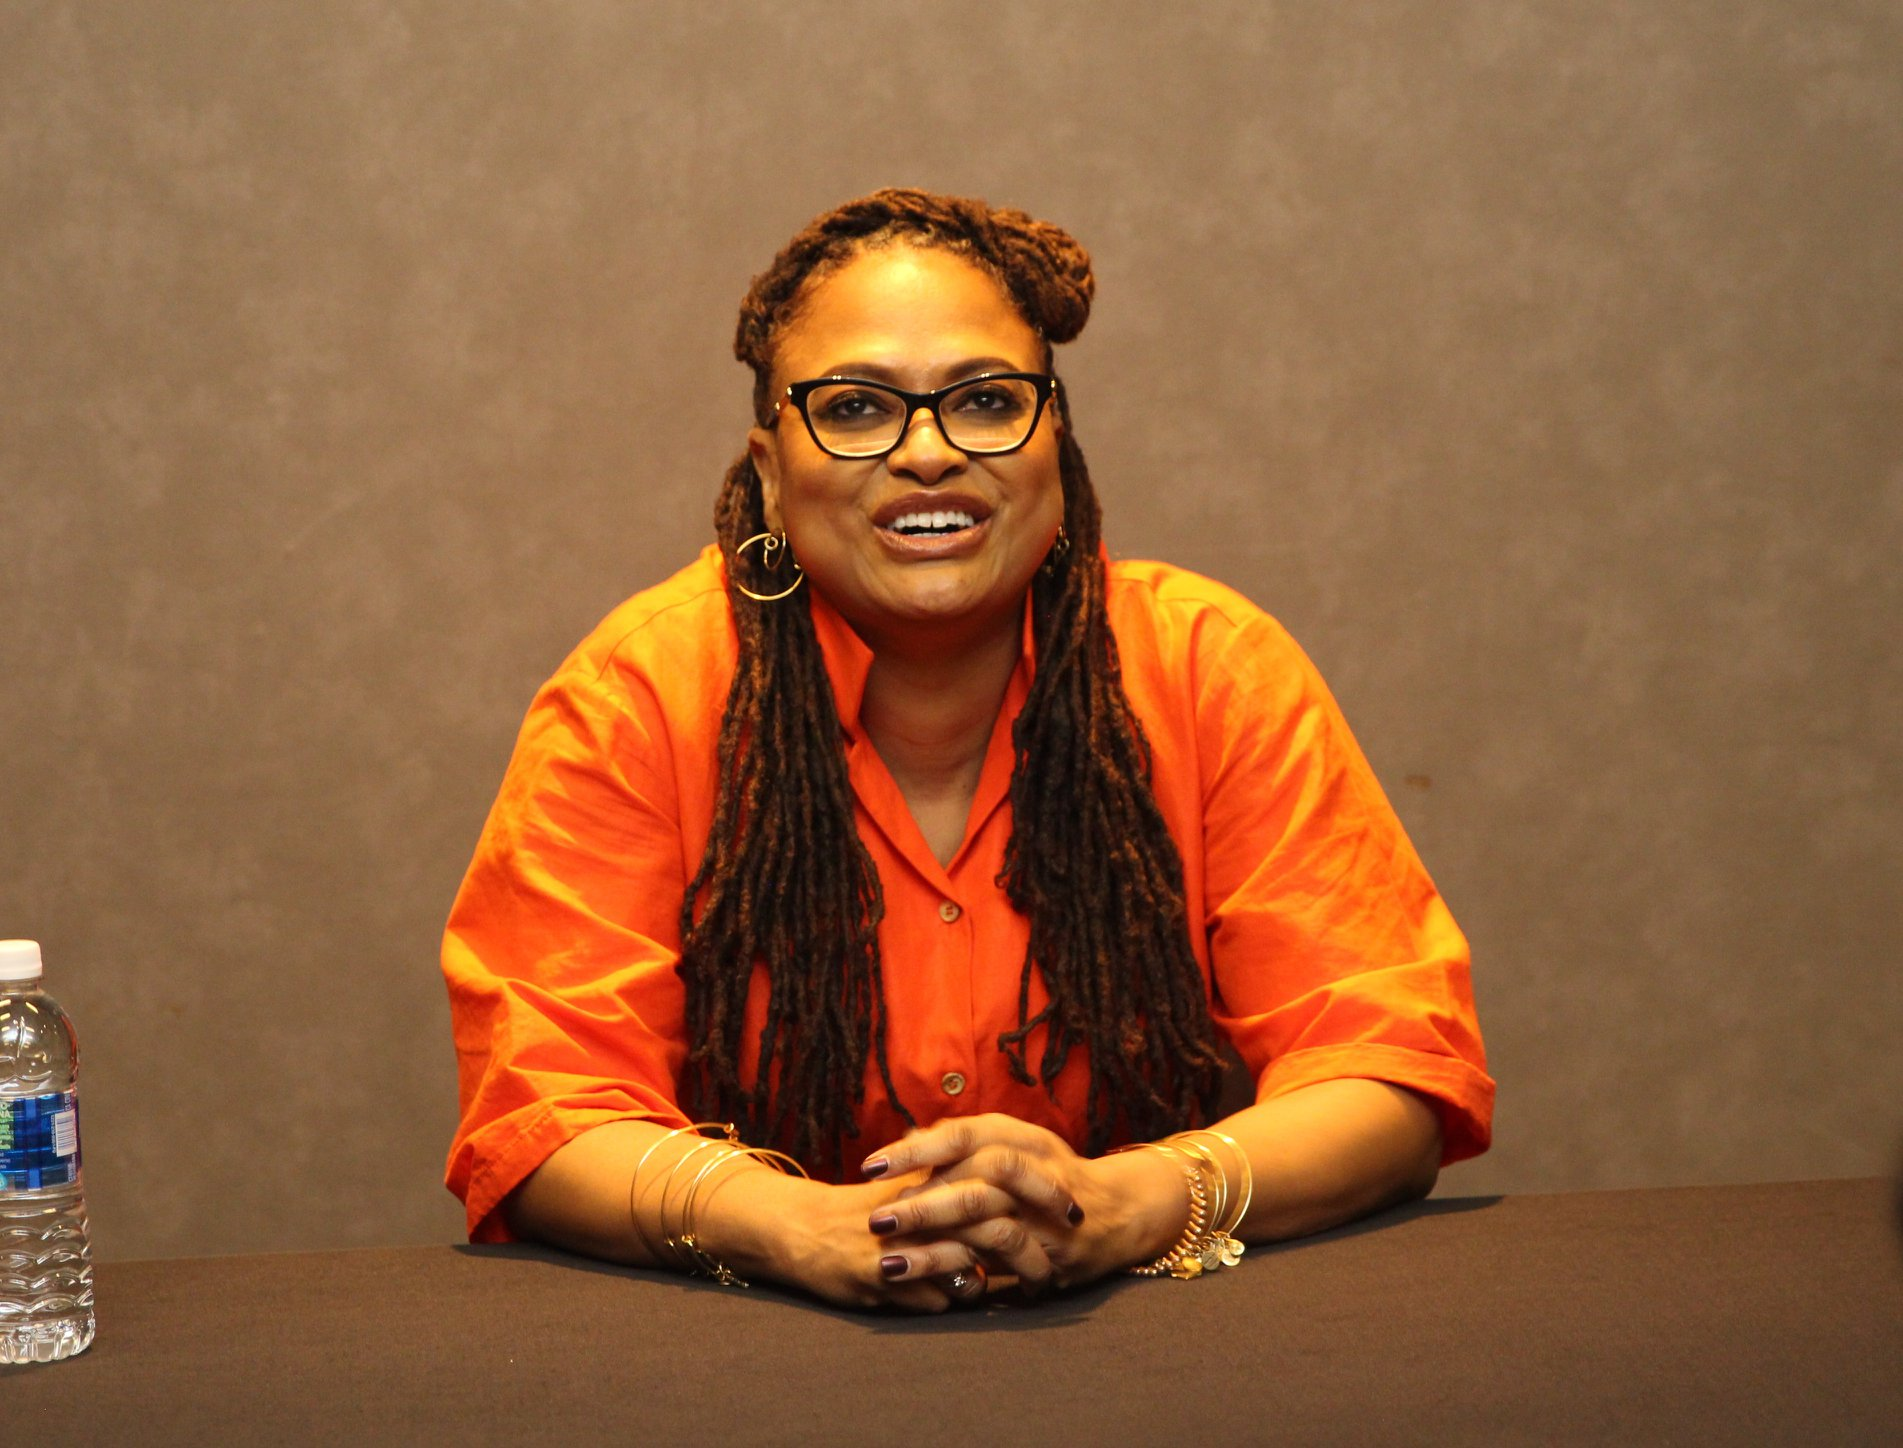 5 Things We Can All Learn from Ava DuVernay